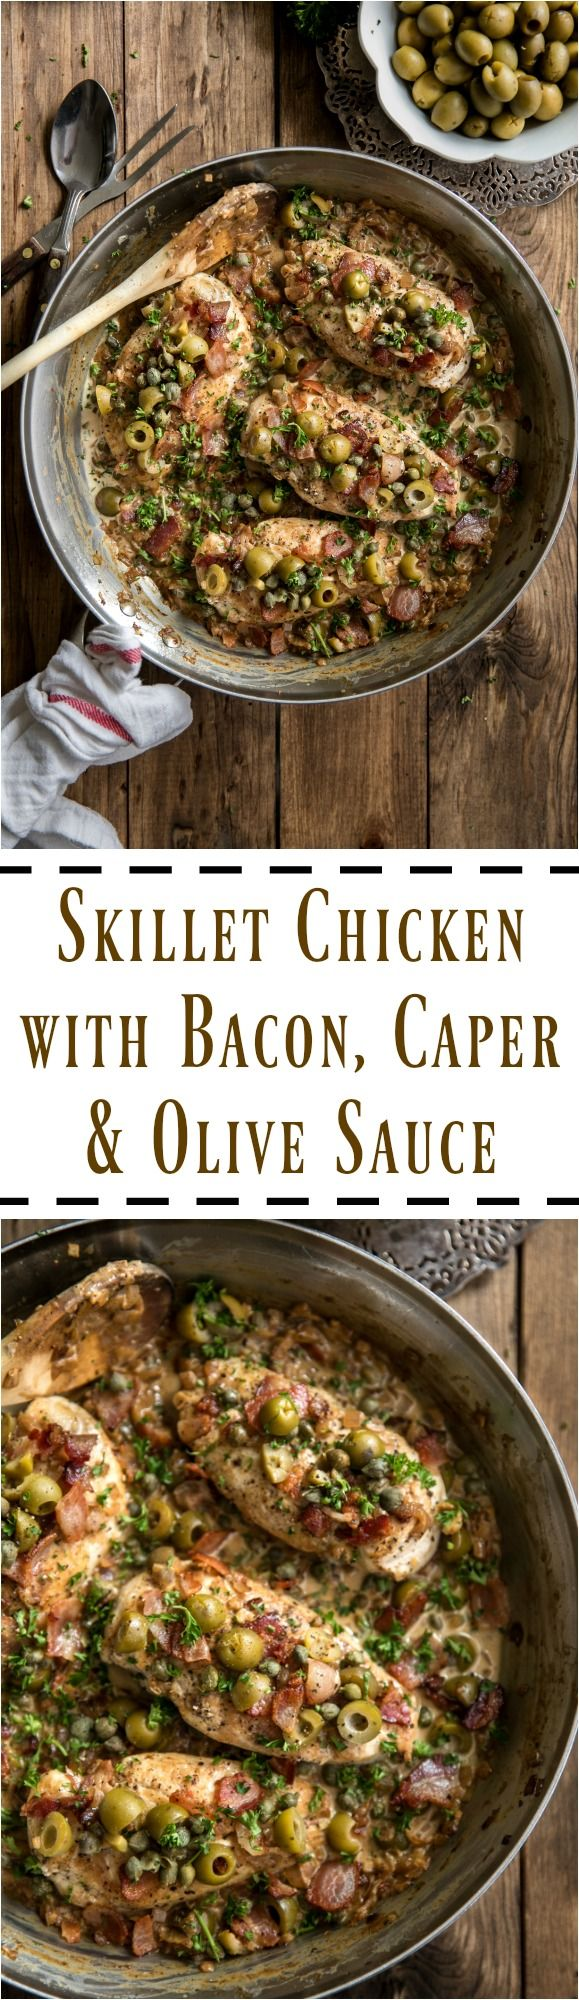 Skillet Chicken with Bacon, Caper and Olive Sauce